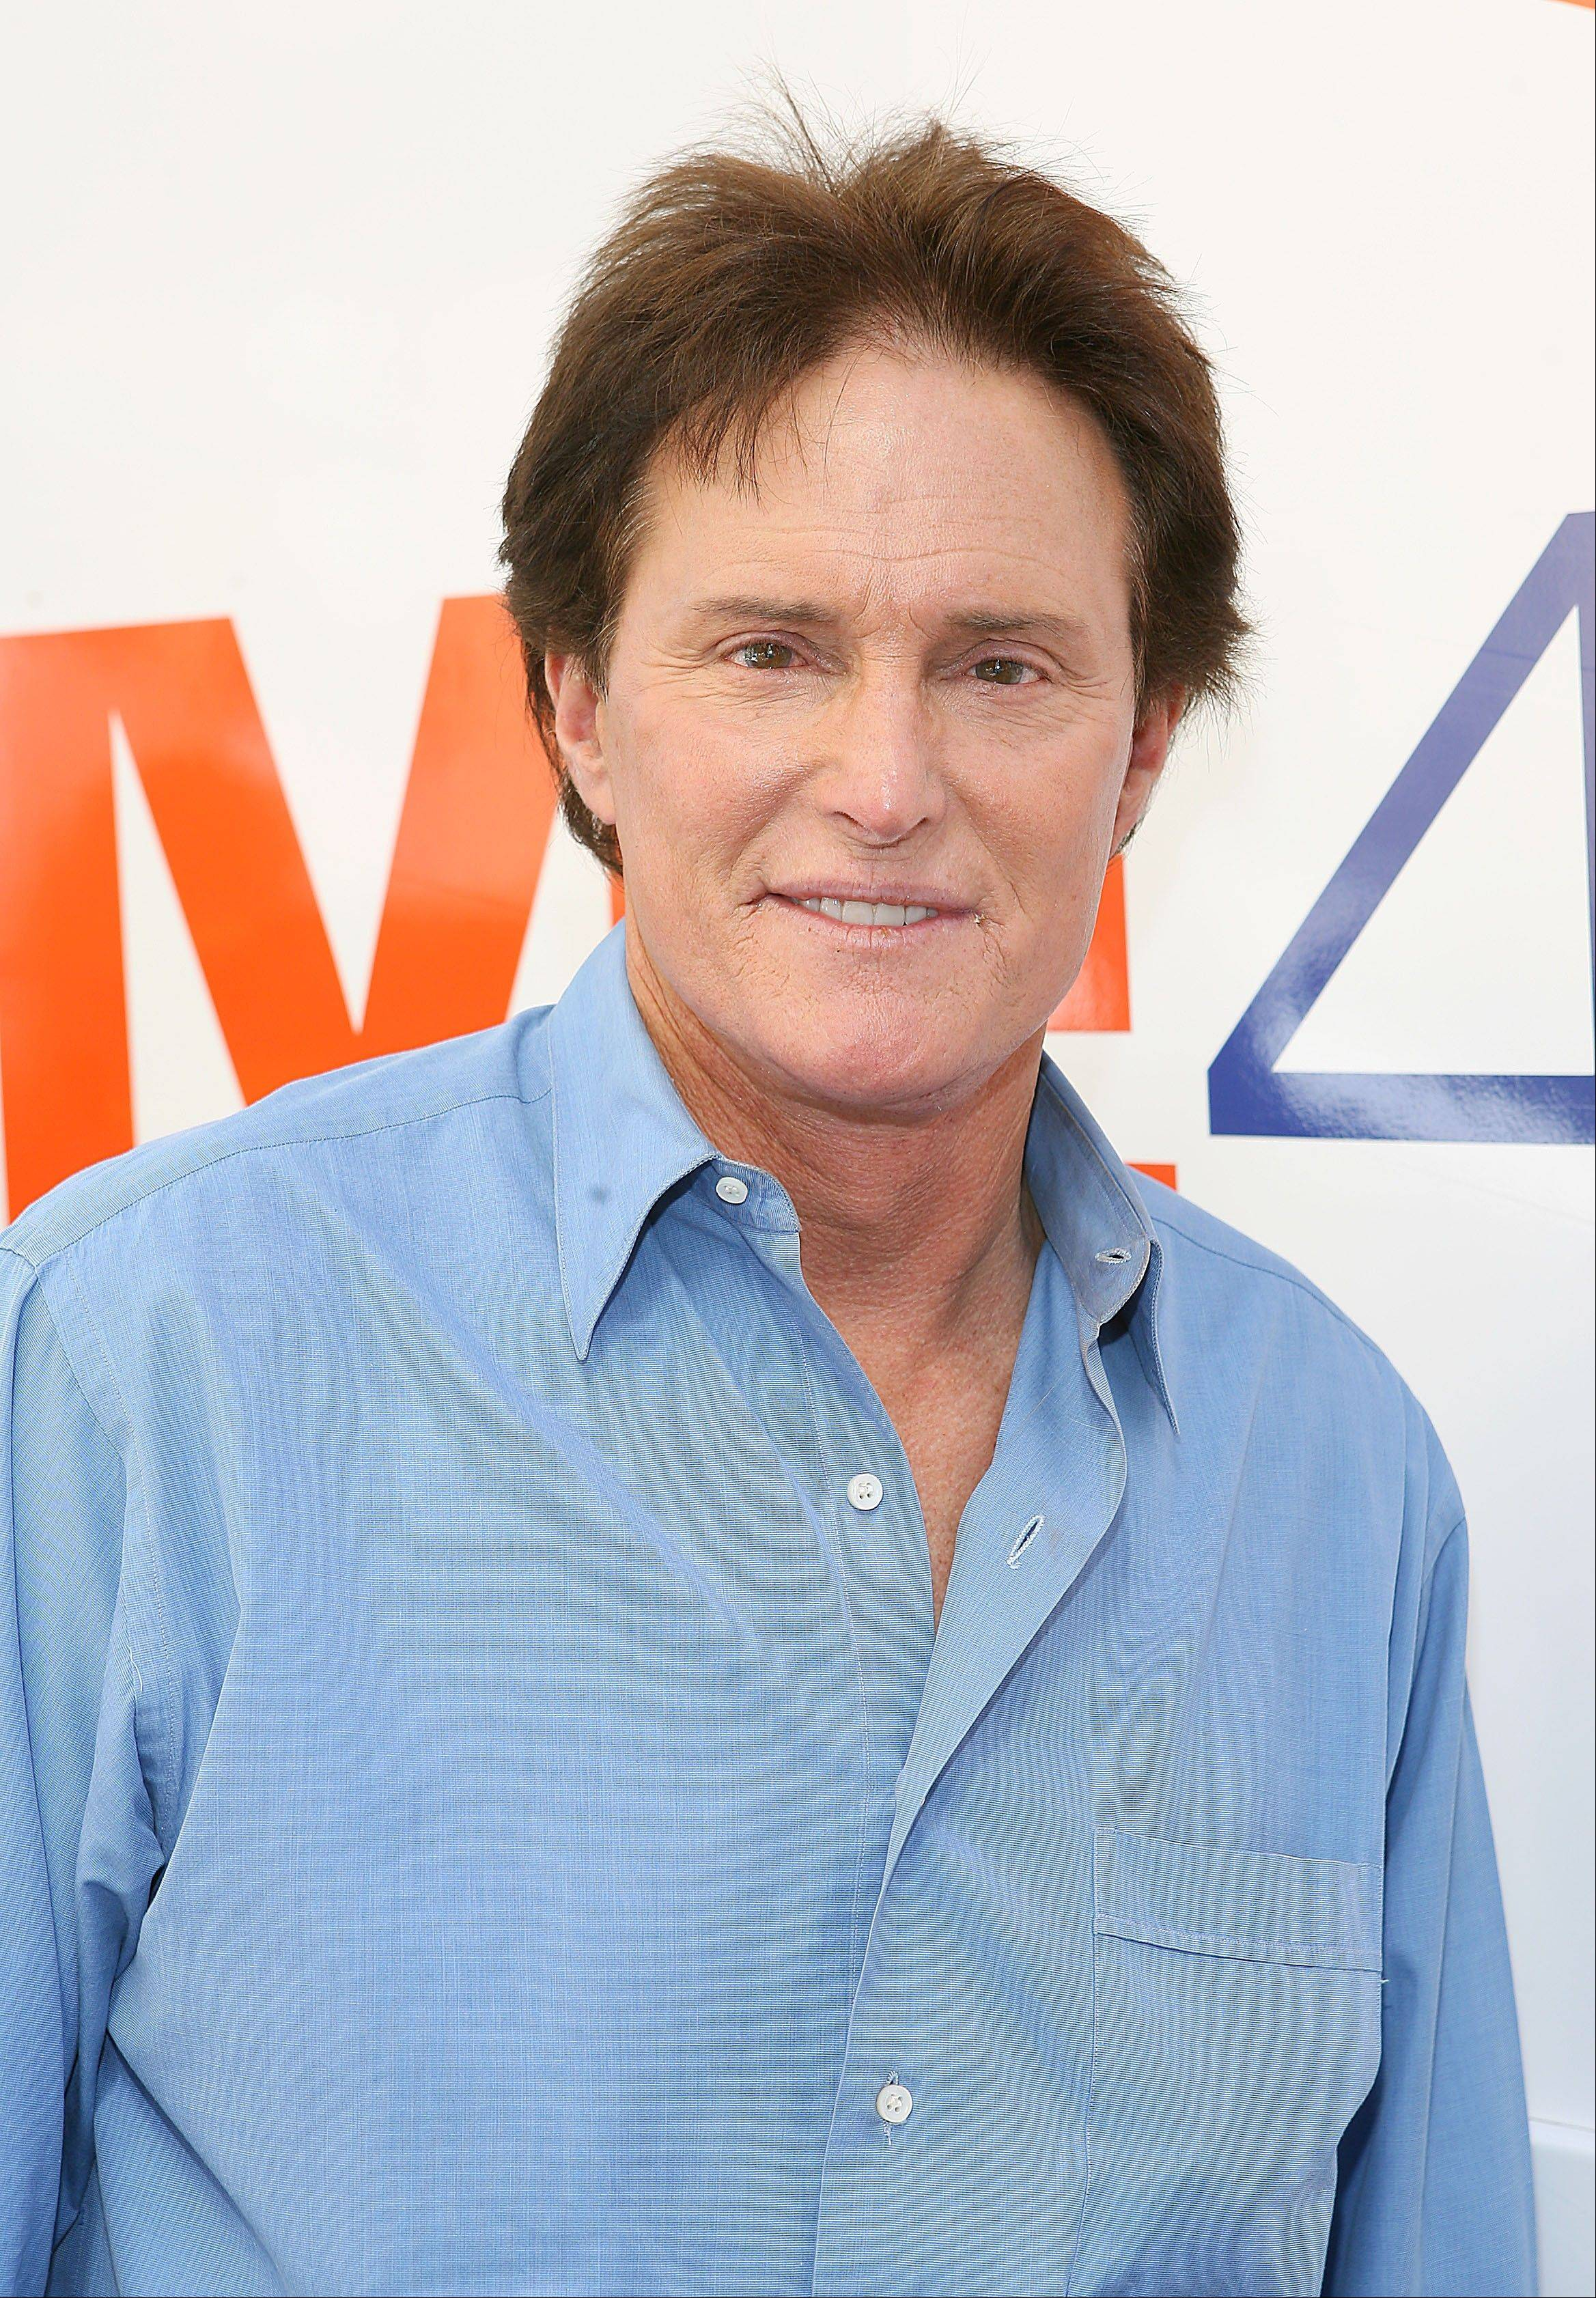 This Feb. 16, 2010 file photo originally released by www.Drive4COPD.com shows 1976 Olympic gold medalist Bruce Jenner during an event to raise awareness about the risks of chronic obstructive pulmonary disease (COPD) at the DRIVE4COPD �Race for the Missing Millions� pit stop in Los Angeles. �Keeping Up With the Kardashians� family patriarch Bruce Jenner, the 1976 decathlon gold medalist, will head to London to be part of the E! team there later this month.